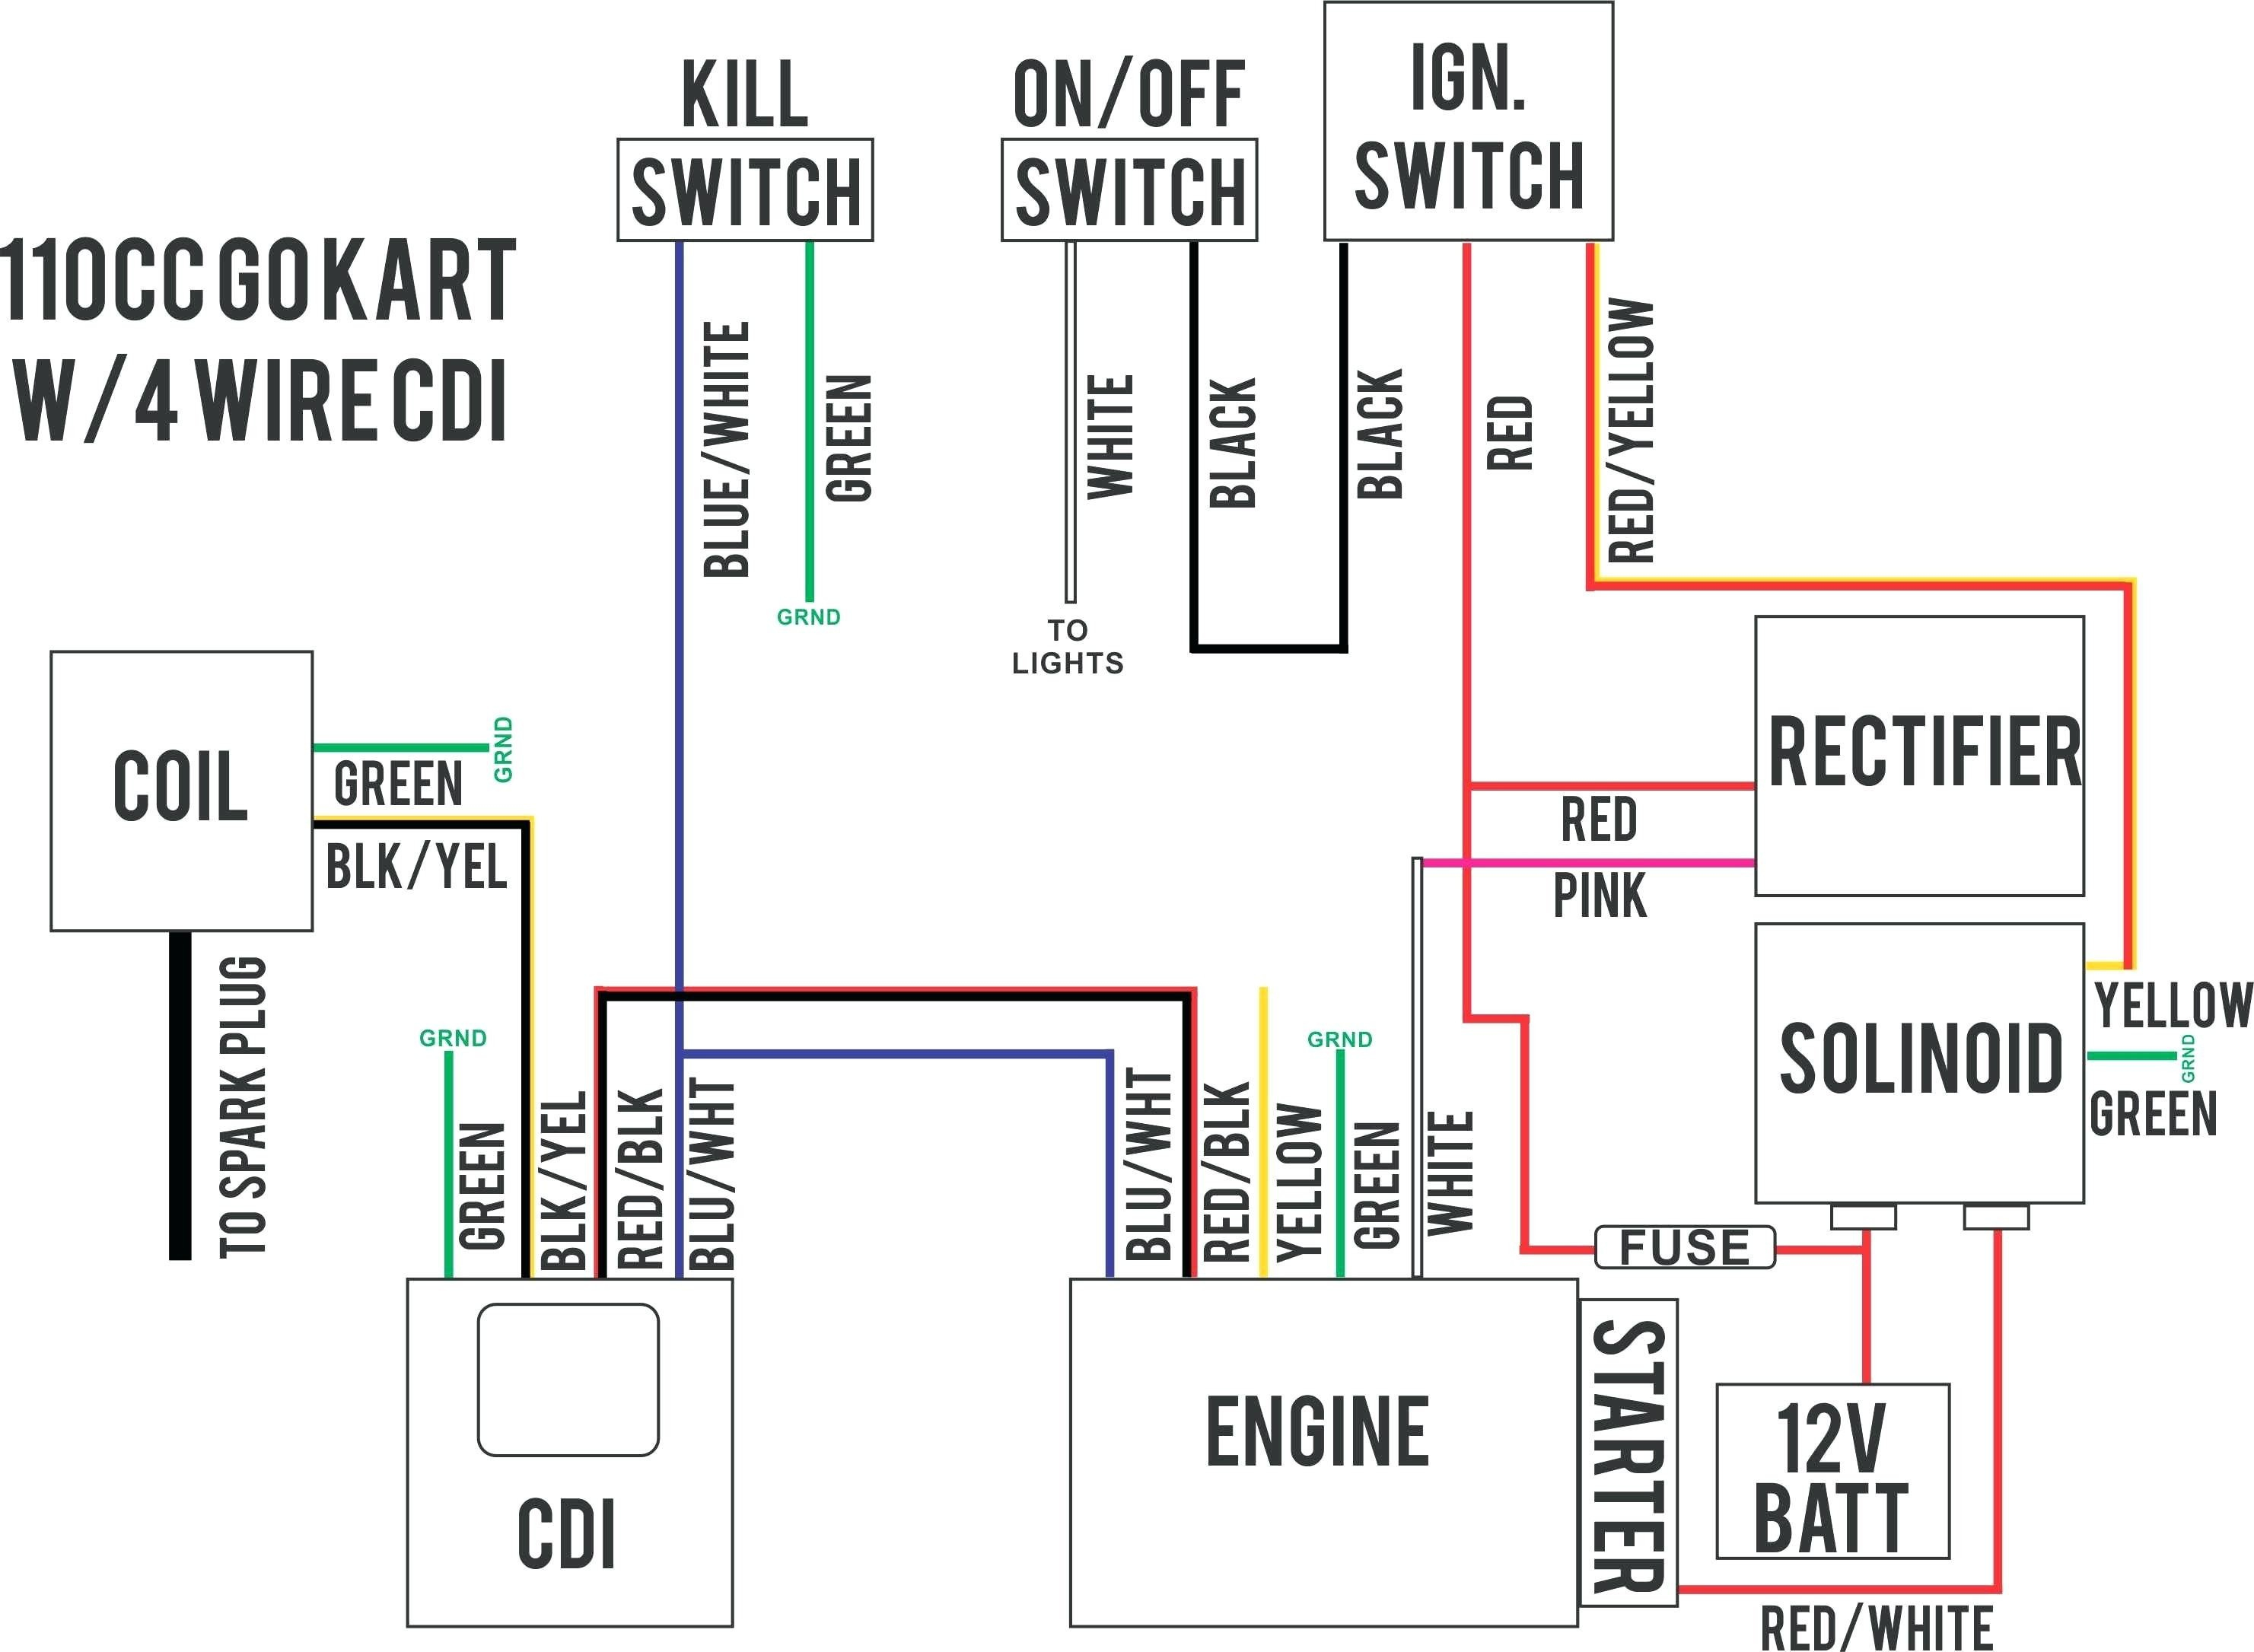 3606 Viper Alarm Wiring Diagram | Wiring Diagram - Viper 5706V Wiring Diagram